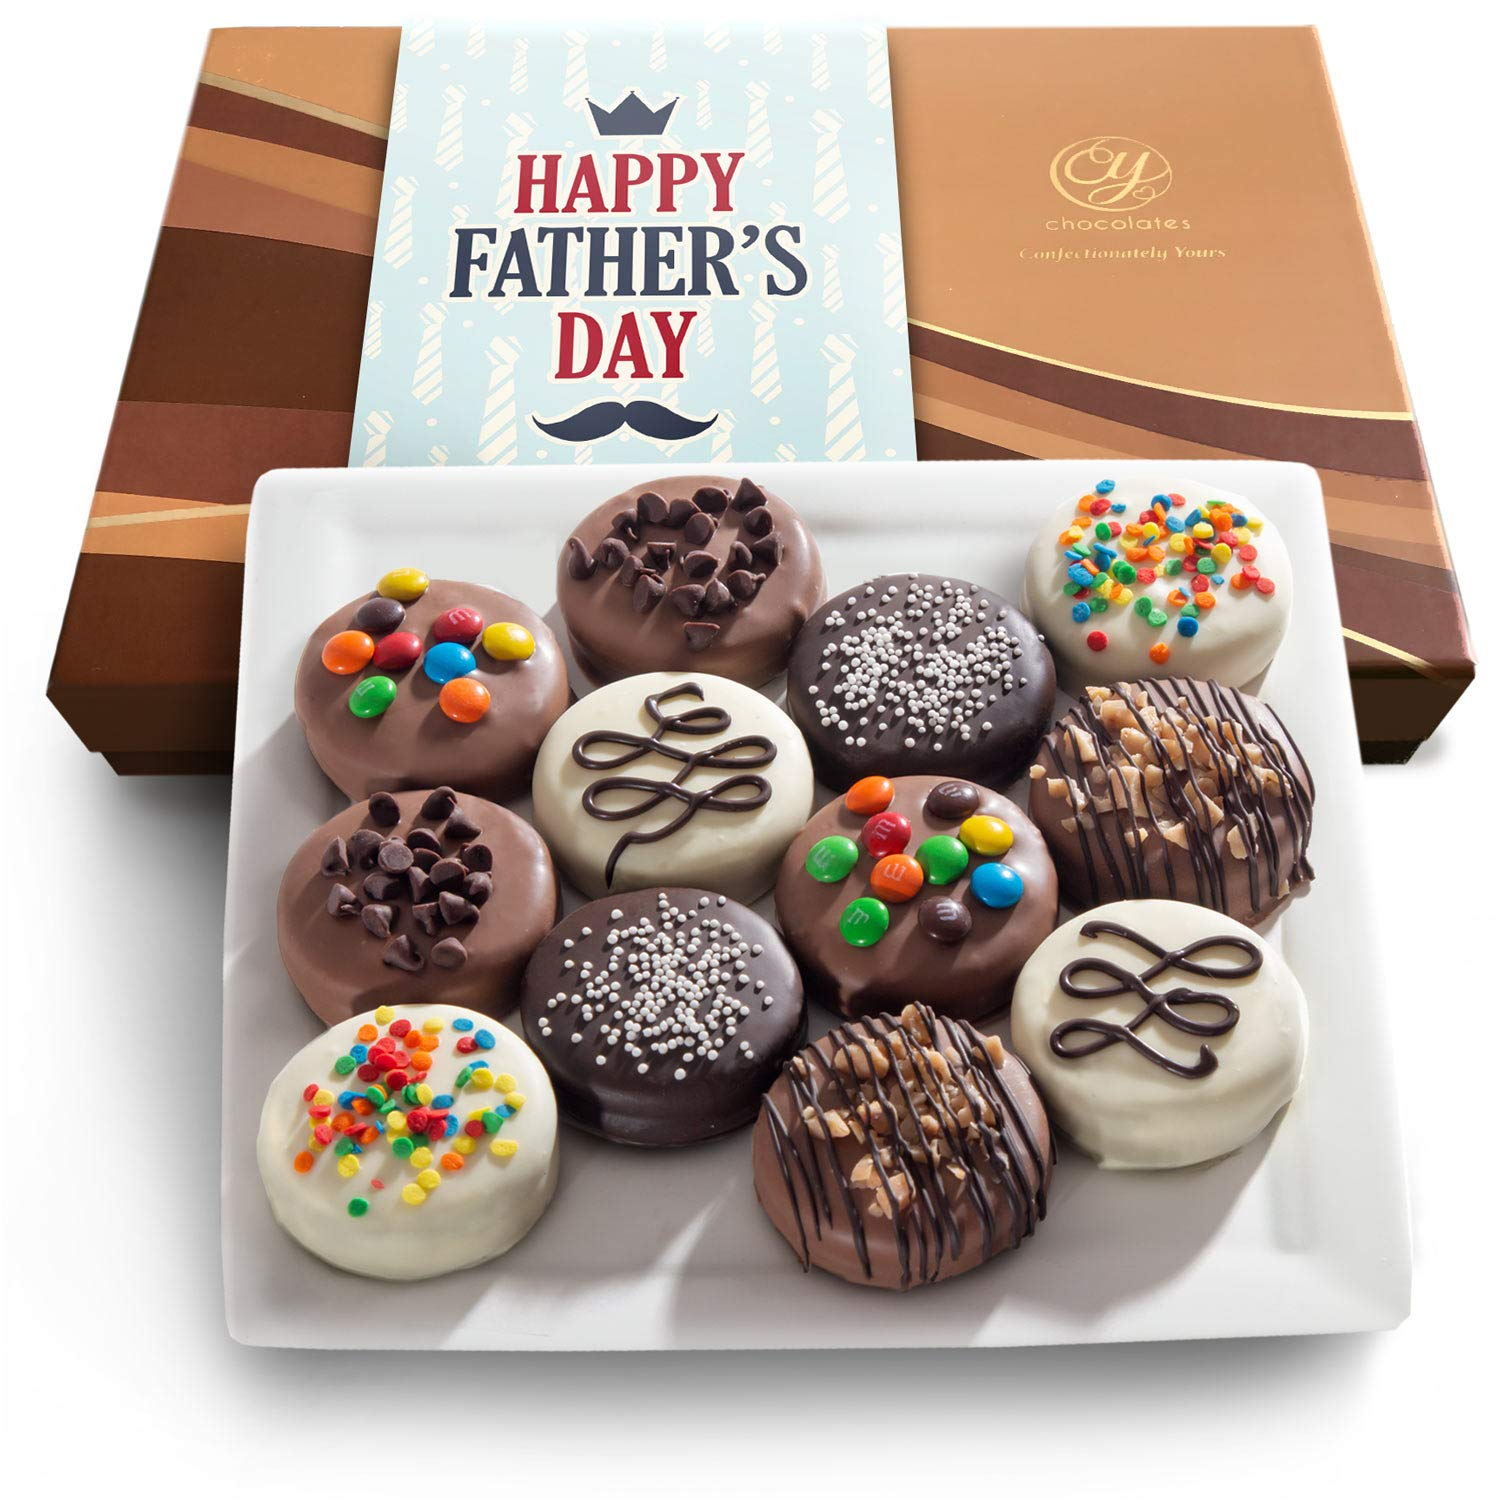 Cy Chocolates Deluxe Chocolate Dipped Oreos Gift Box